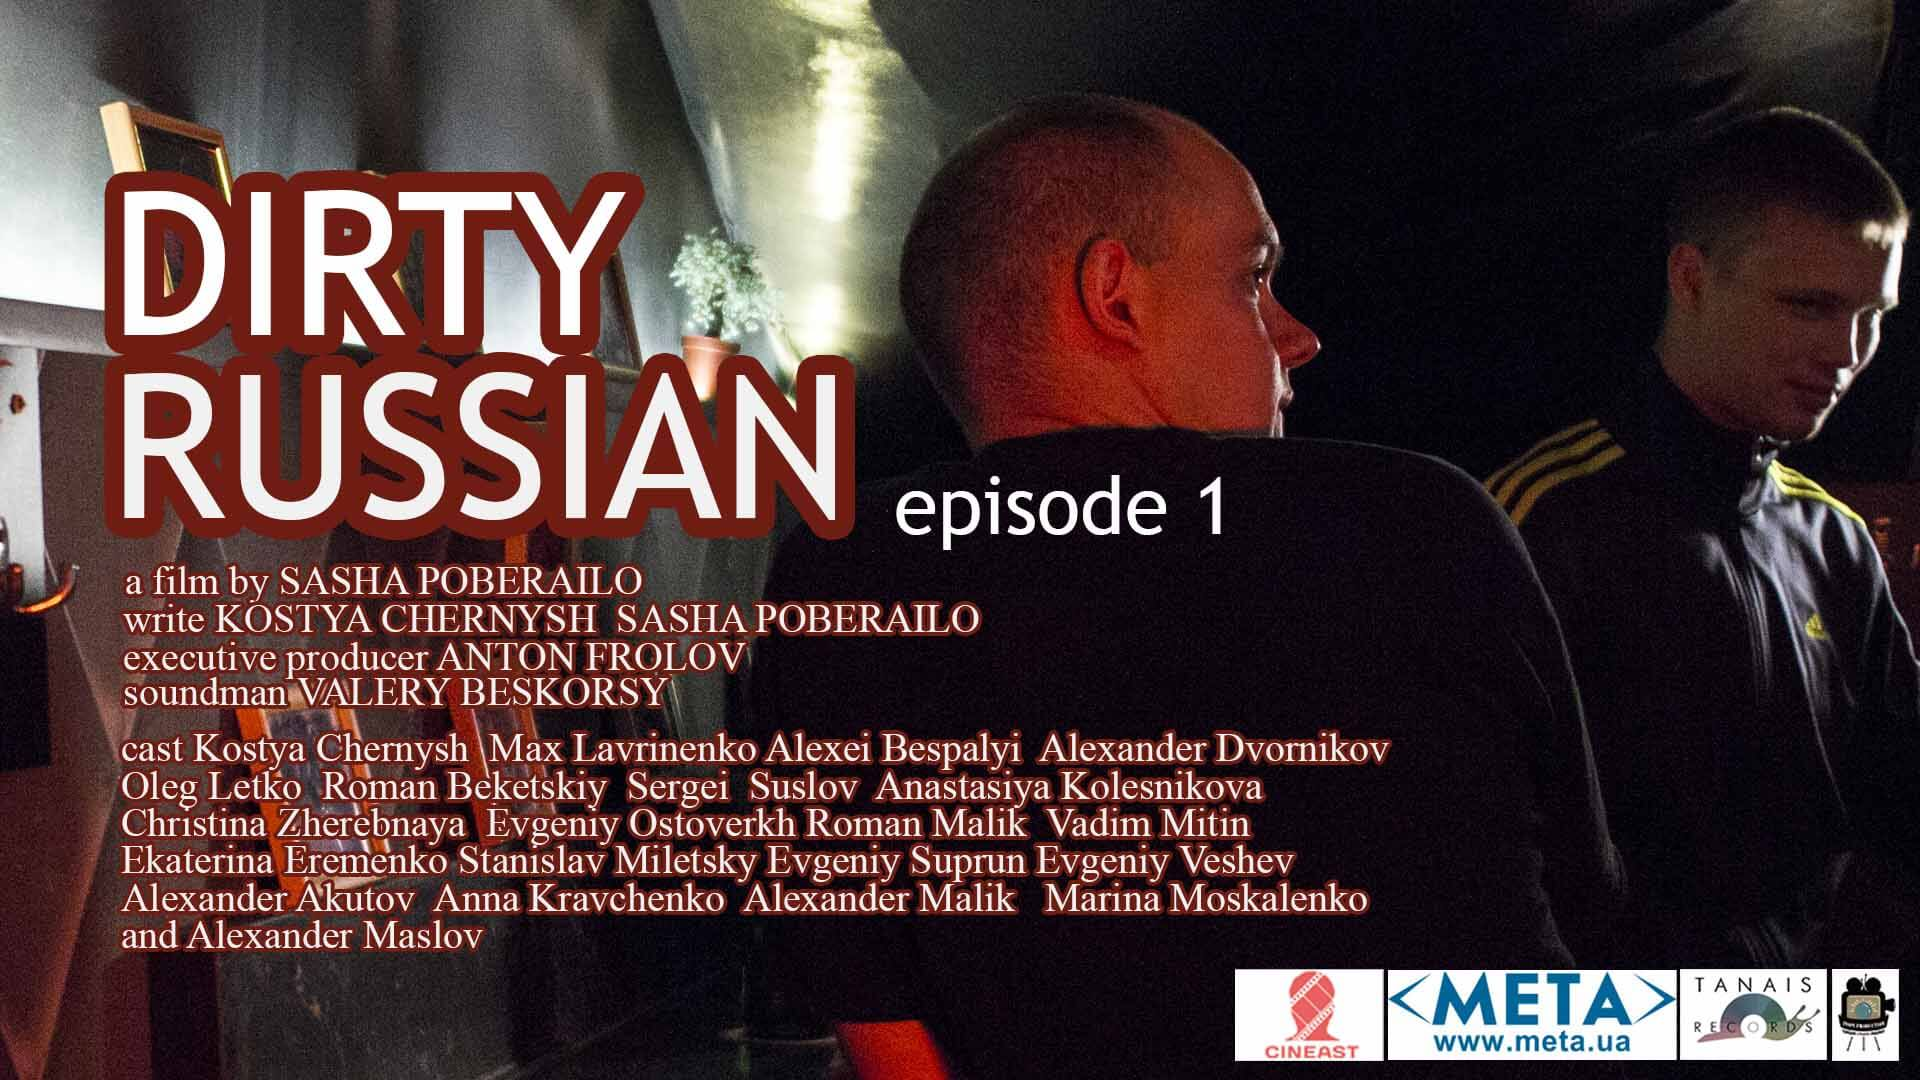 dirty russian episode 1 - dirtyrussian, webseries